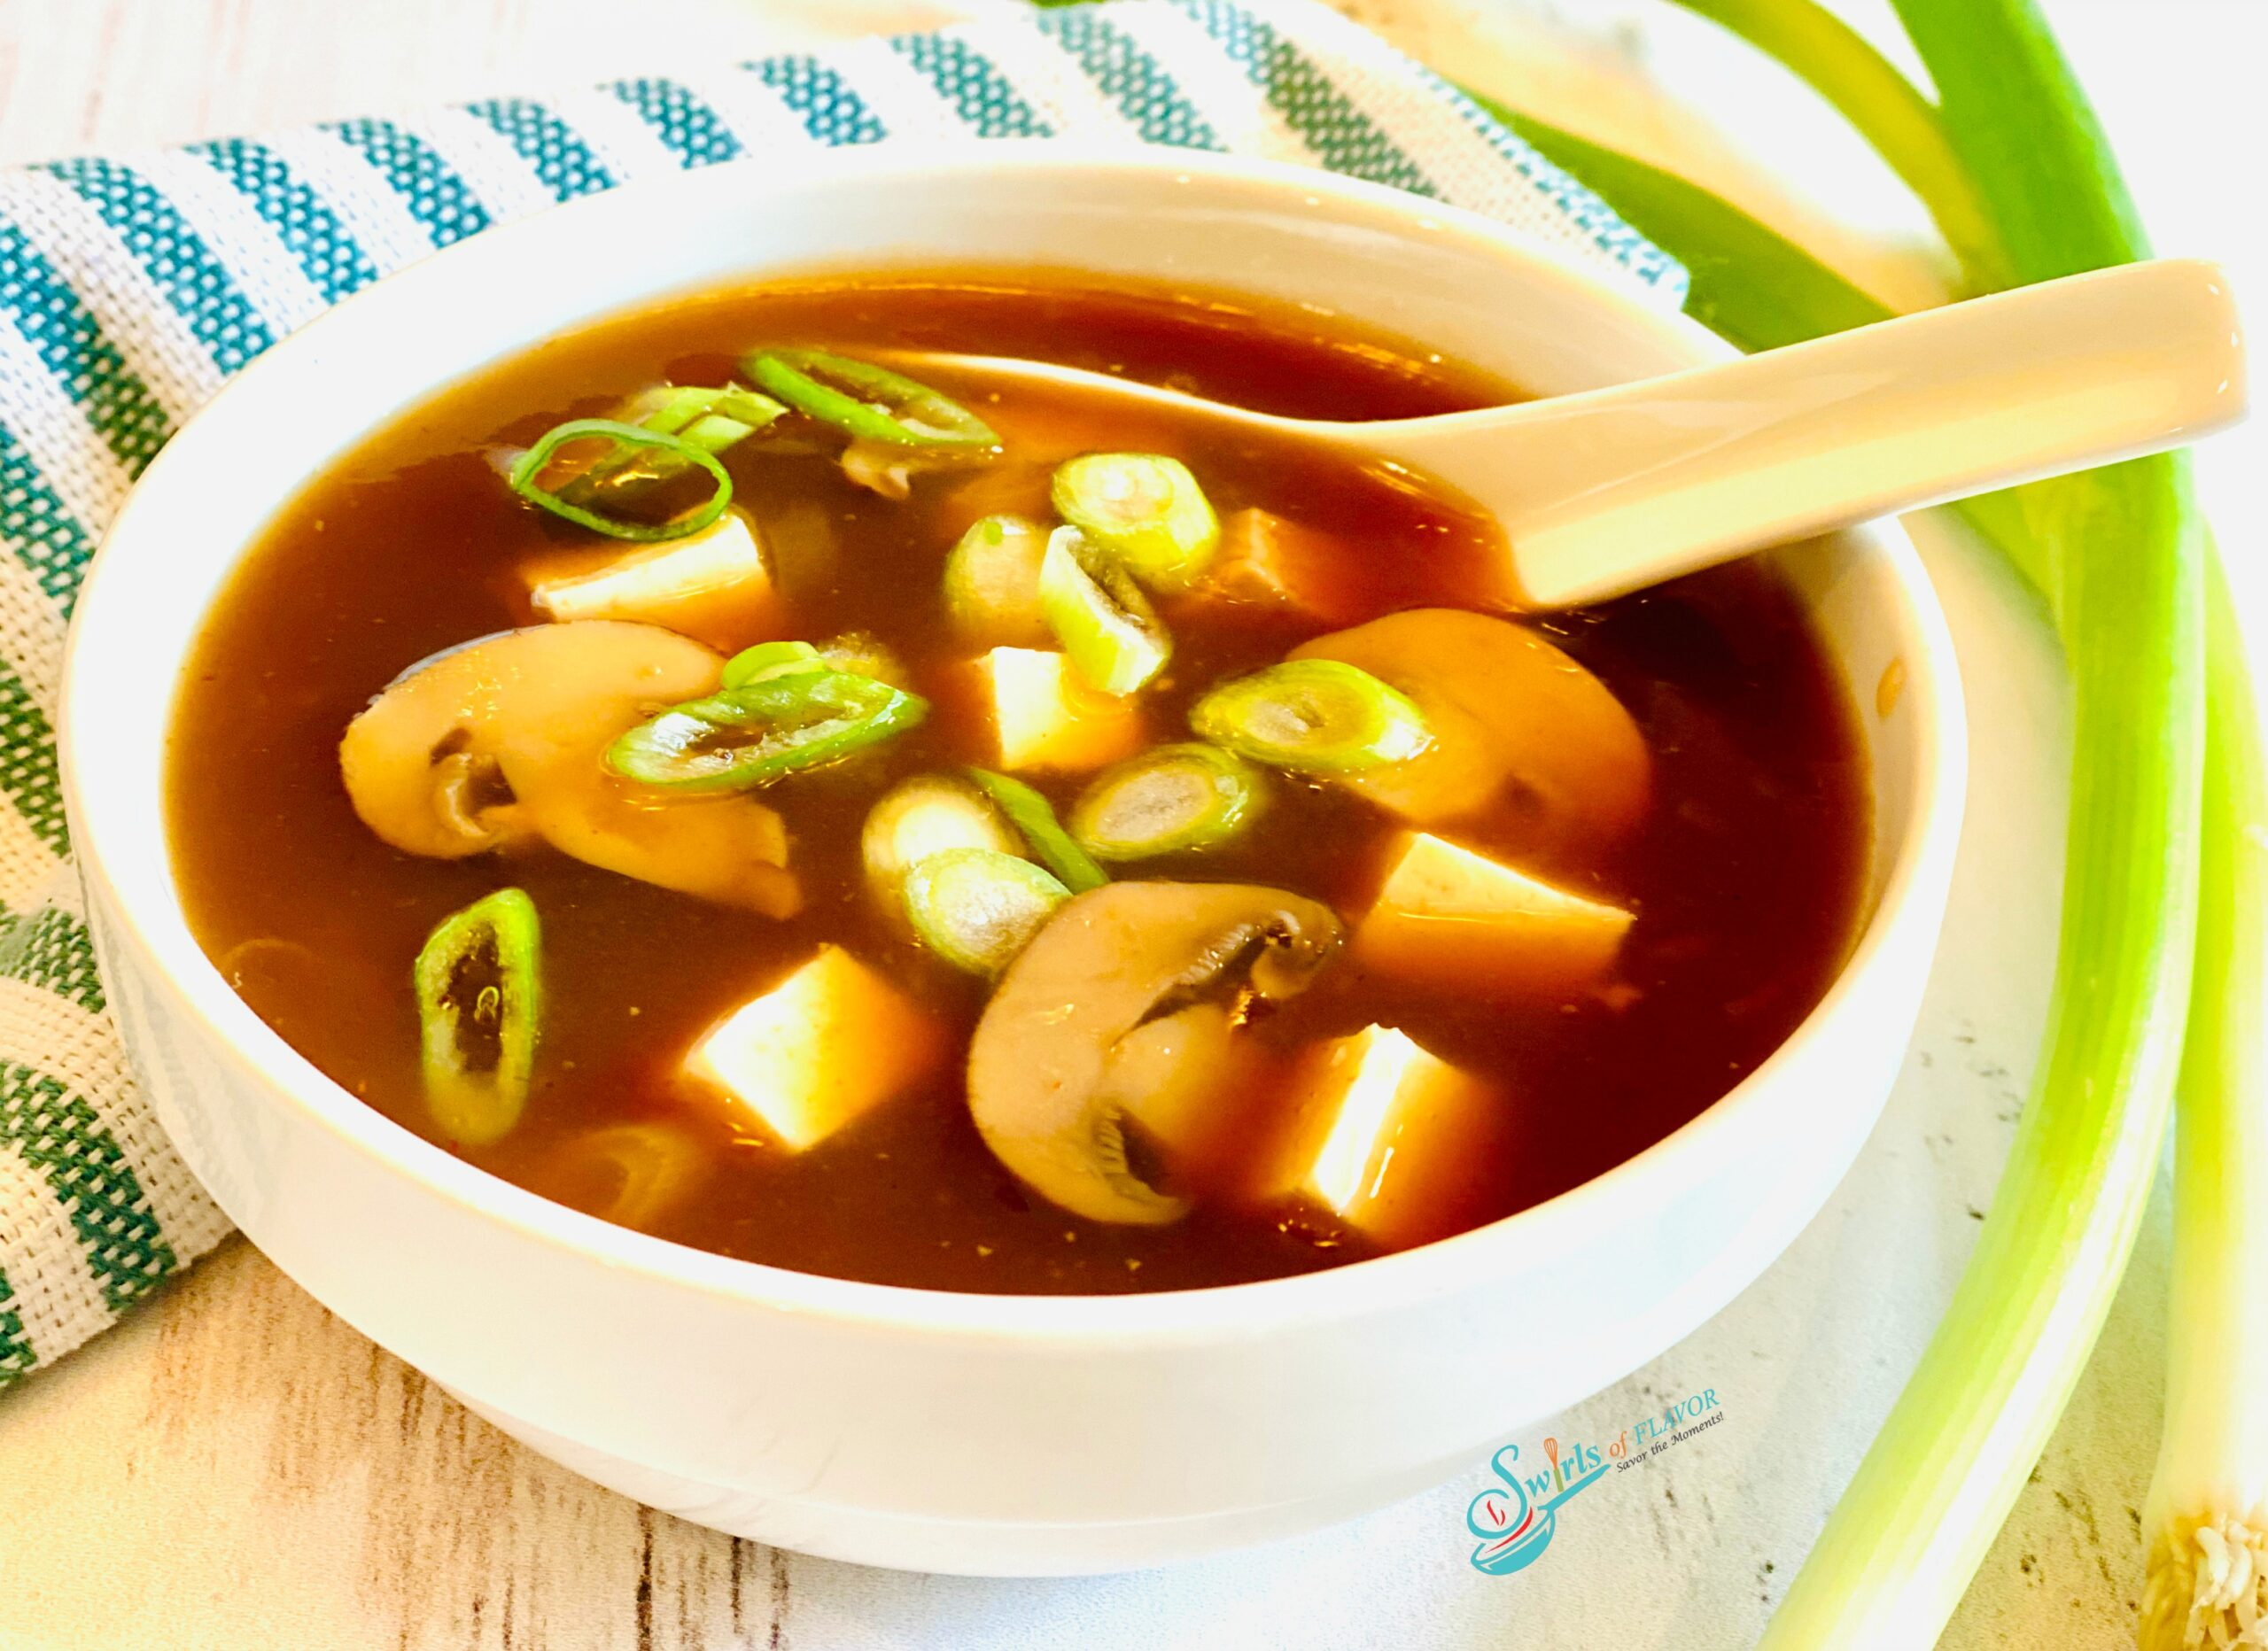 homemade hot and sour soup in white bowl with spoon